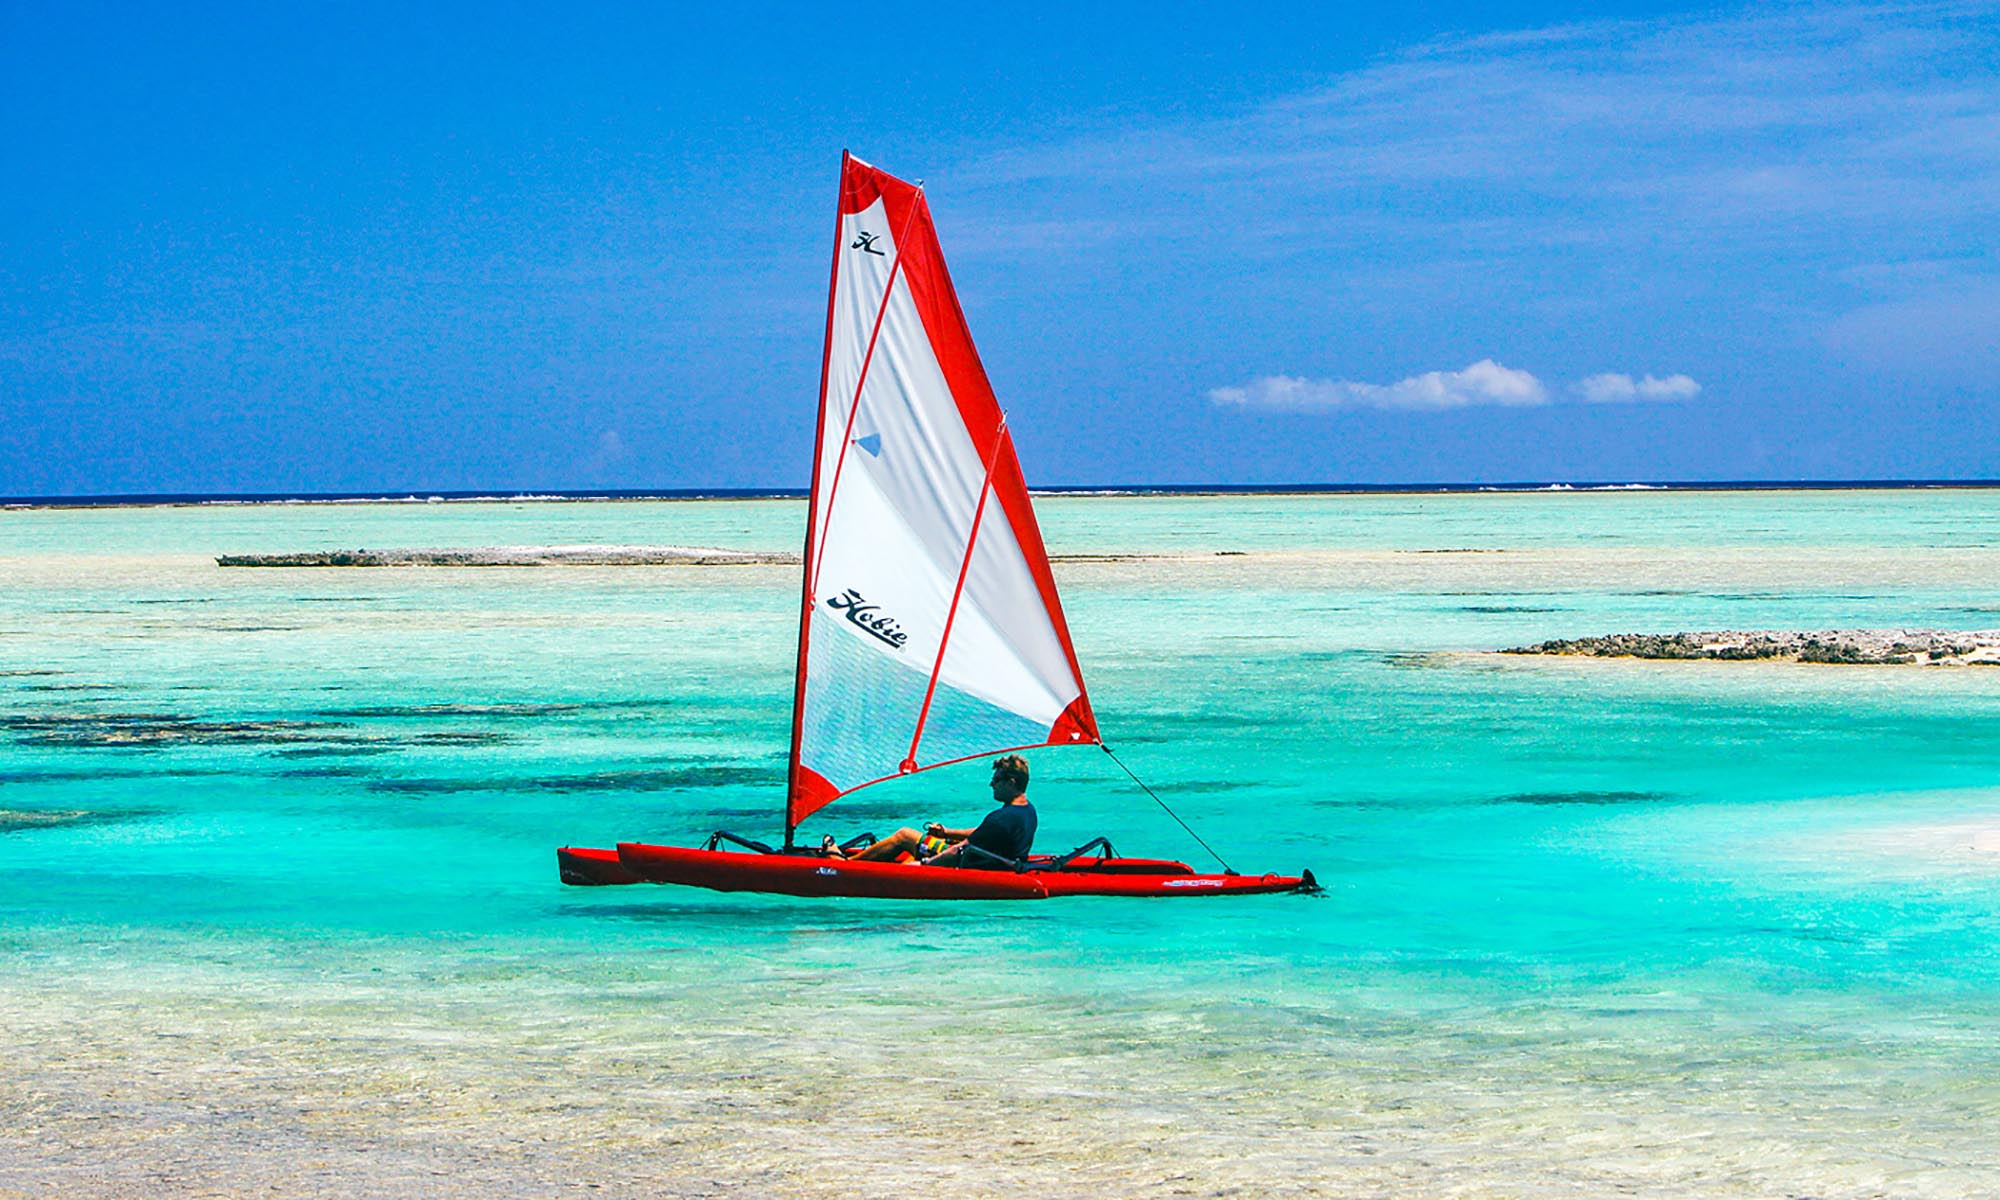 Ninamu Resort, Hobie Cat